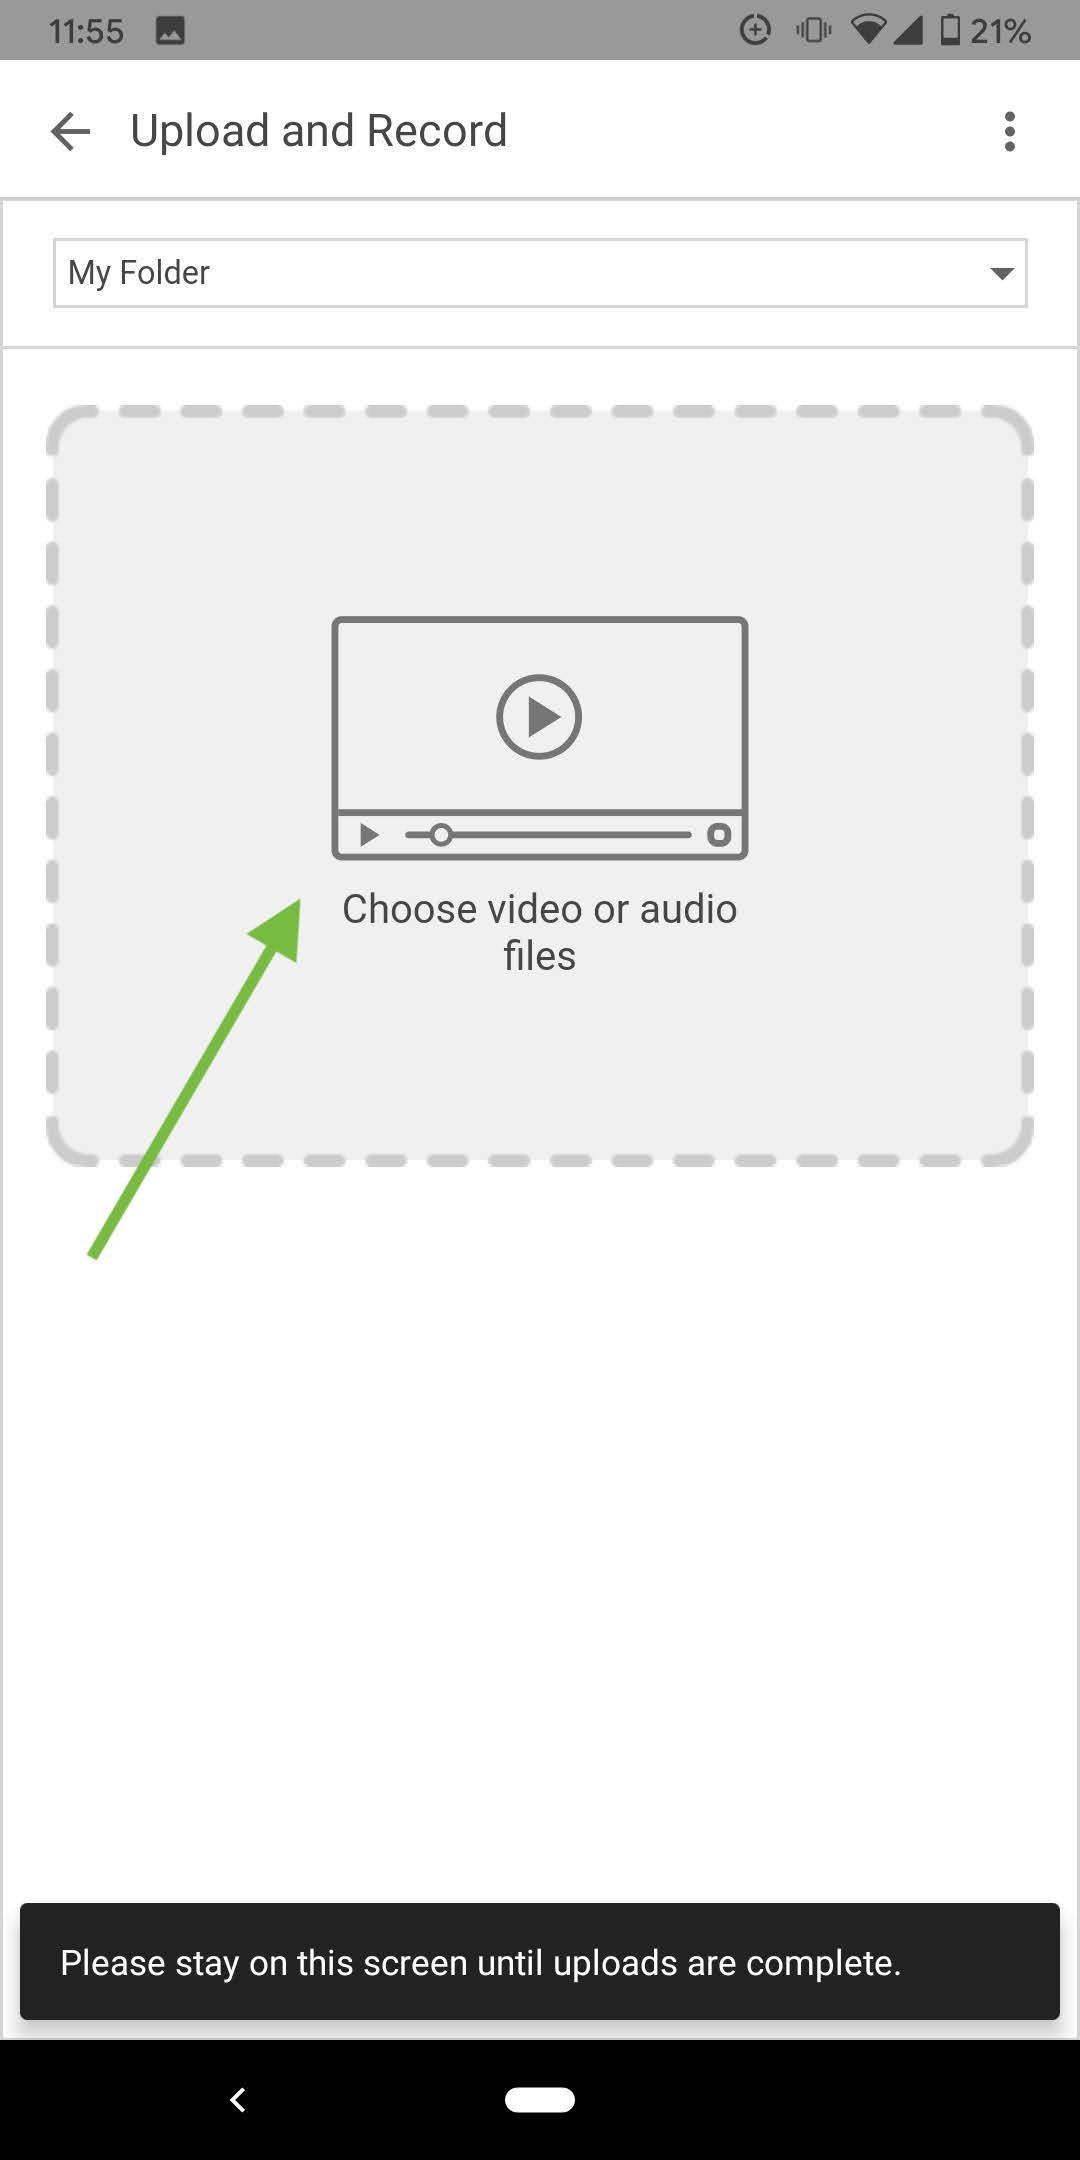 The Panopto beta app's upload screen, with the Choose Video or Audio File box indicated.